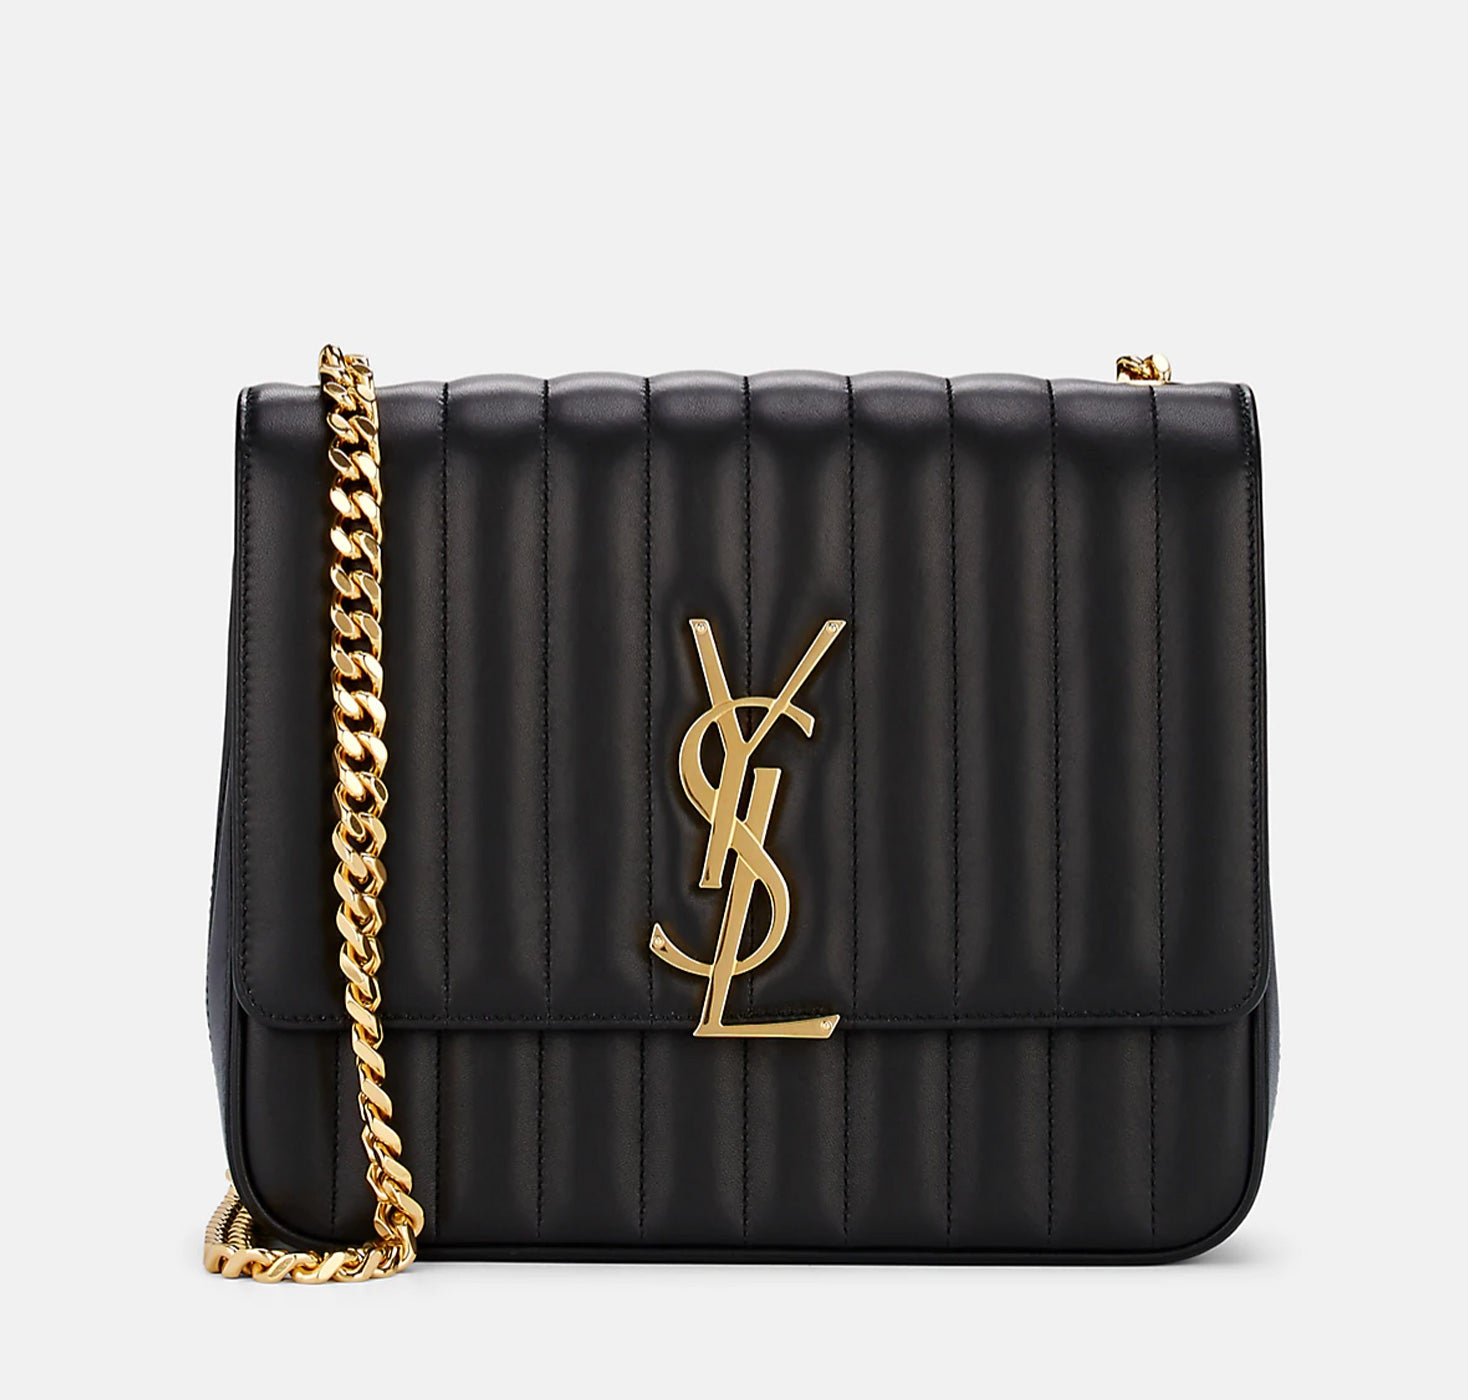 Saint Laurent - Monogram Vicky large leather chain shoulder bag